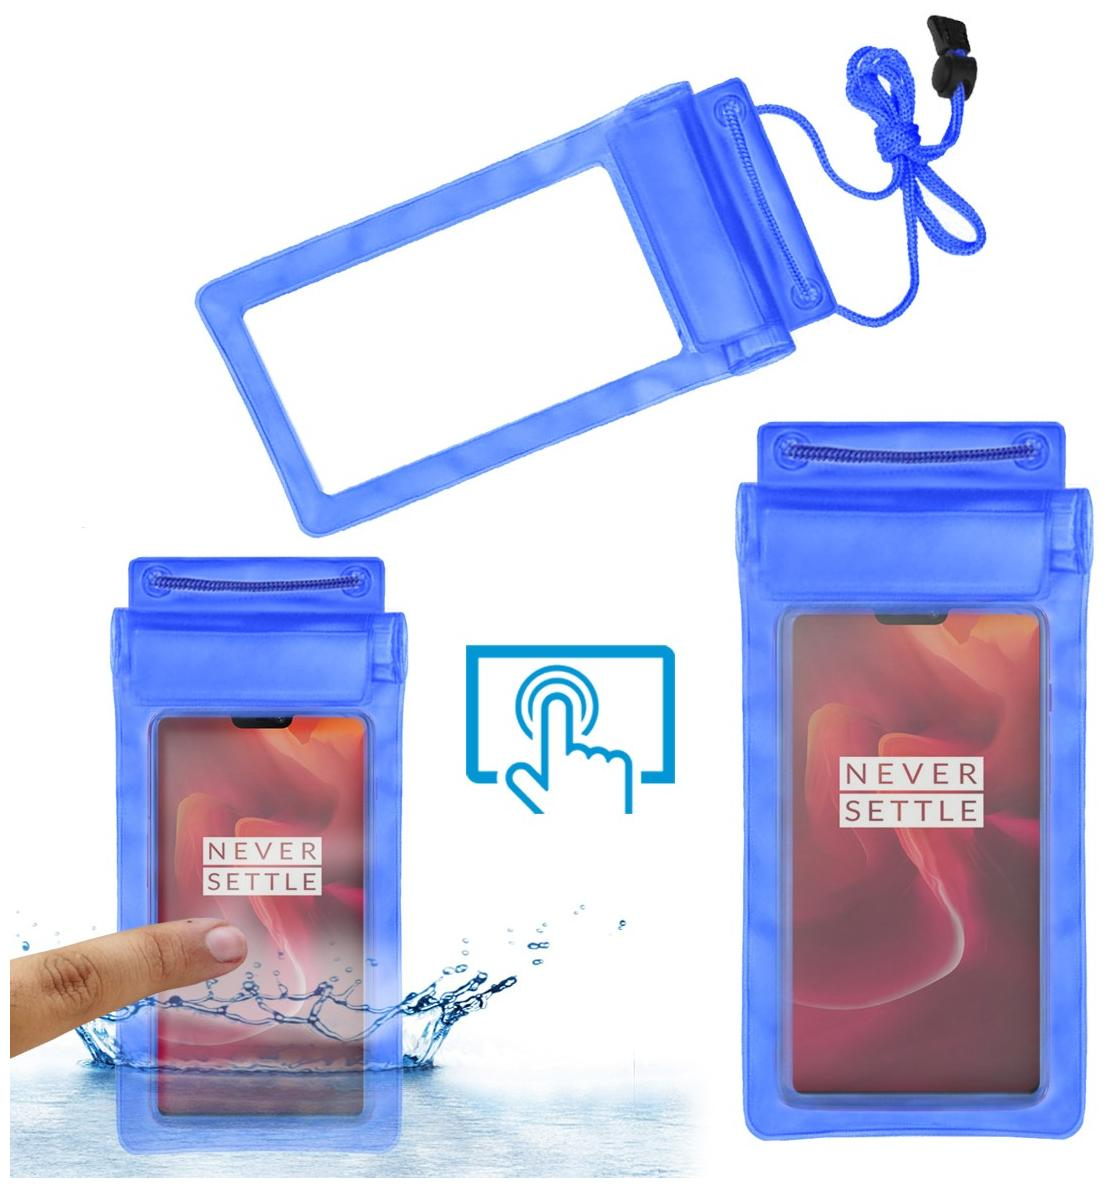 Acm Waterproof Bag Case for Oneplus 6 Red Edition Mobile (Rain,Dust,Snow & Water Resistant) Blue